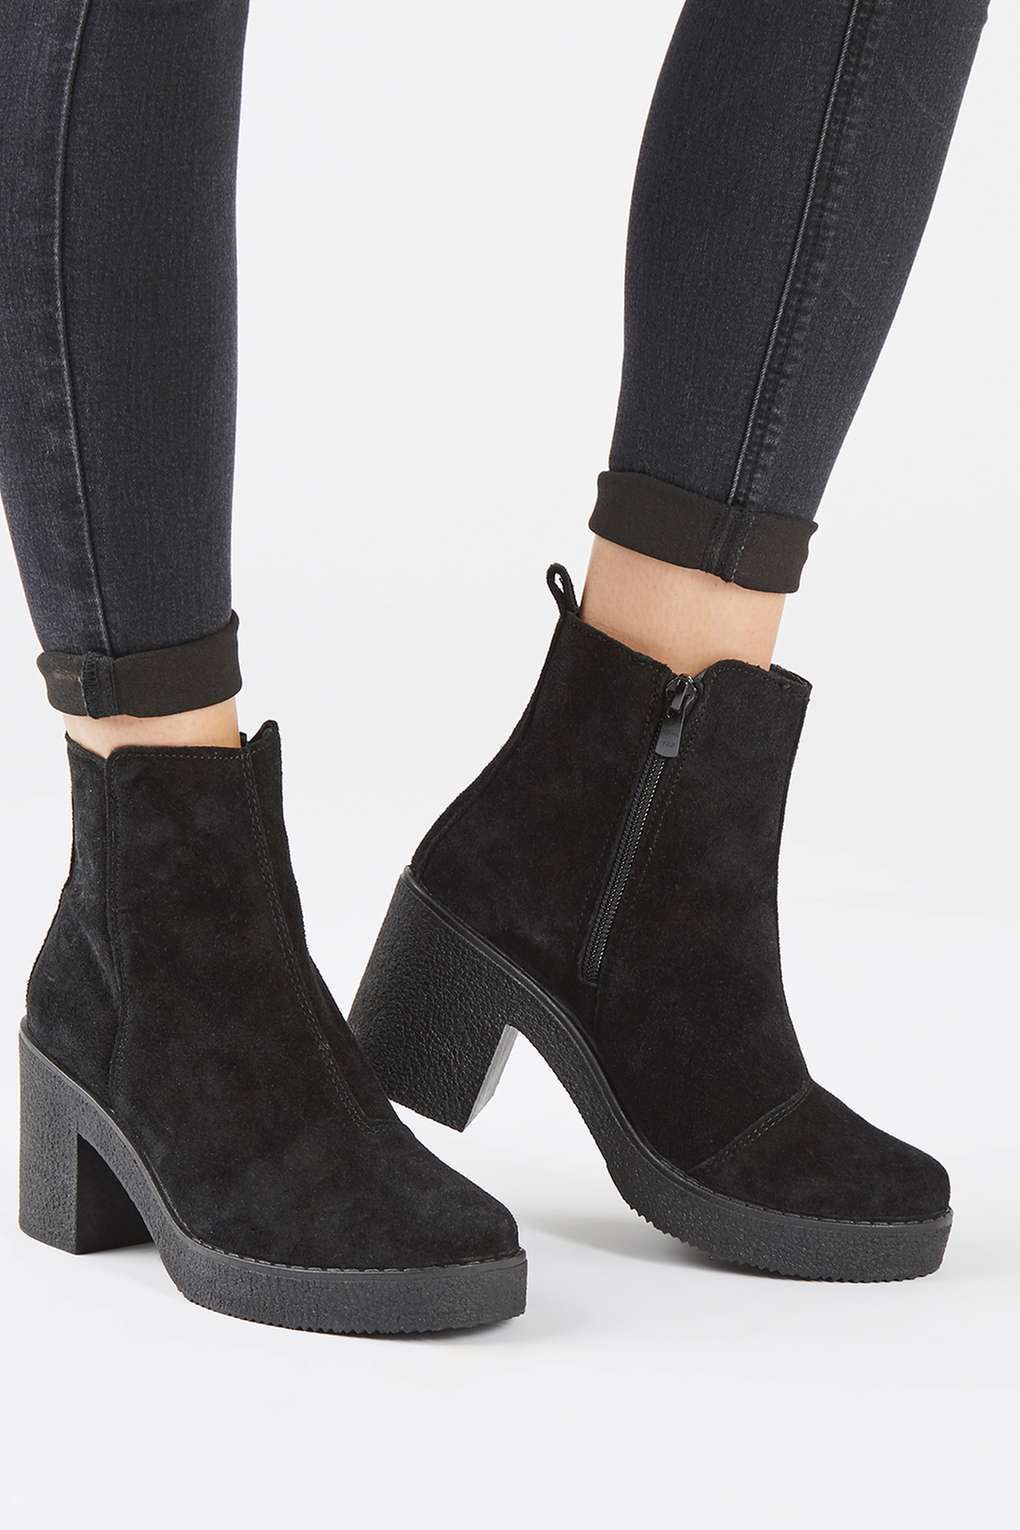 BAY Suede Heeled Boots